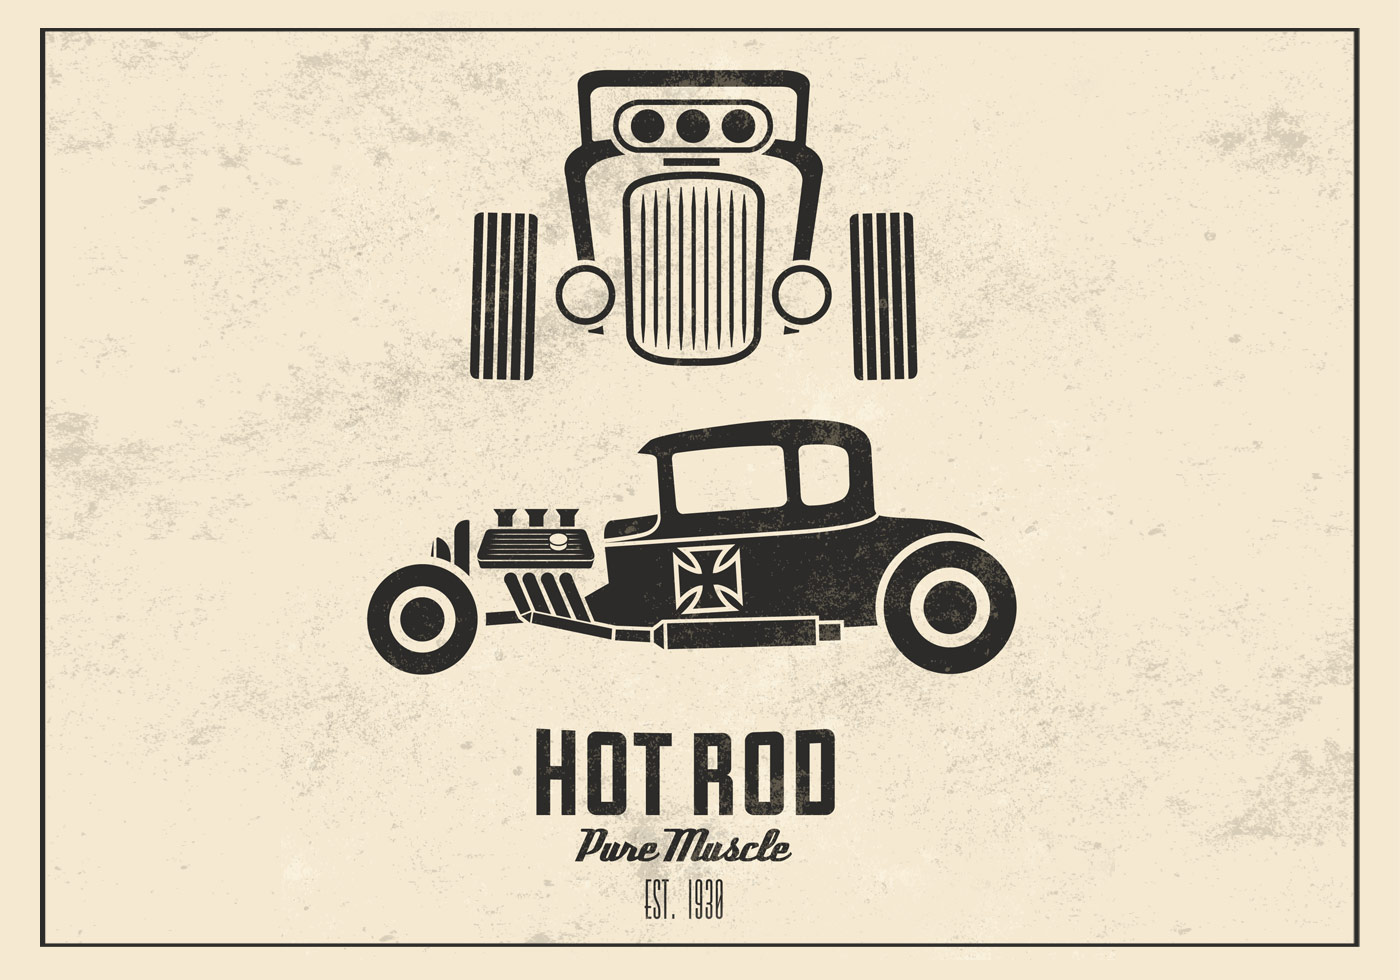 Formas de hot rod | Free Photoshop Shapes at …